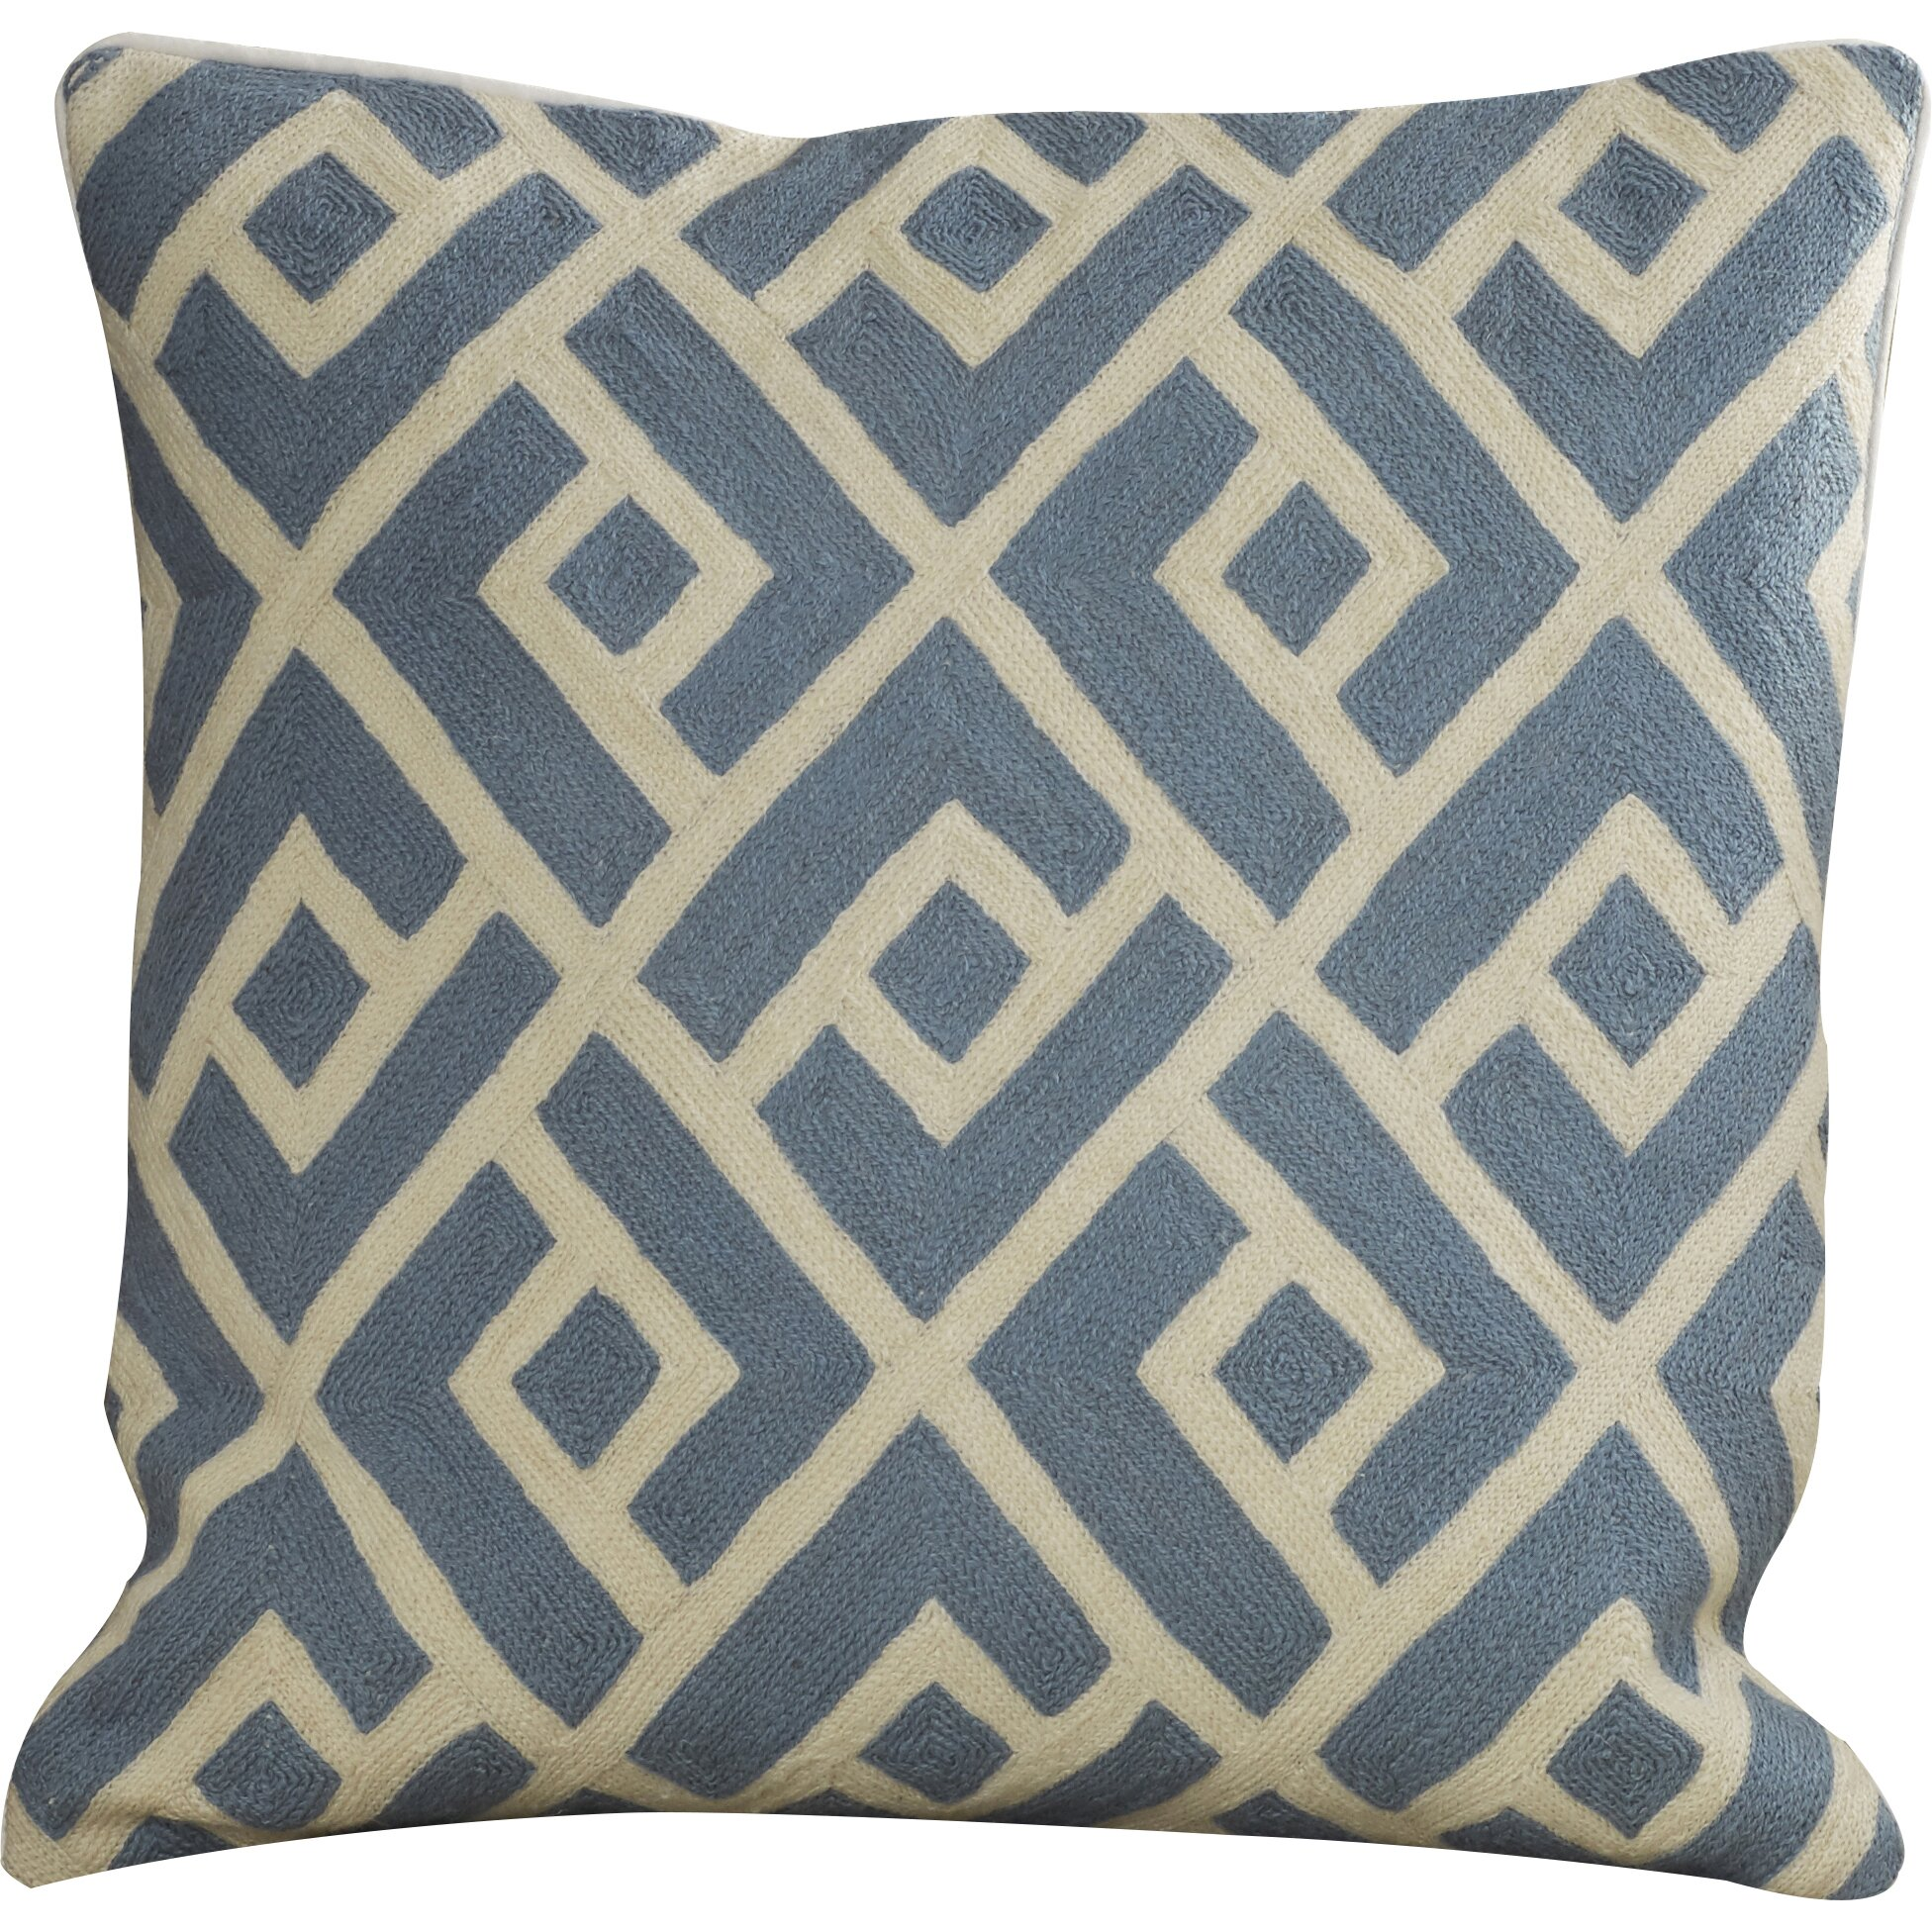 Varick Gallery Midwood Throw Pillow & Reviews Wayfair.ca